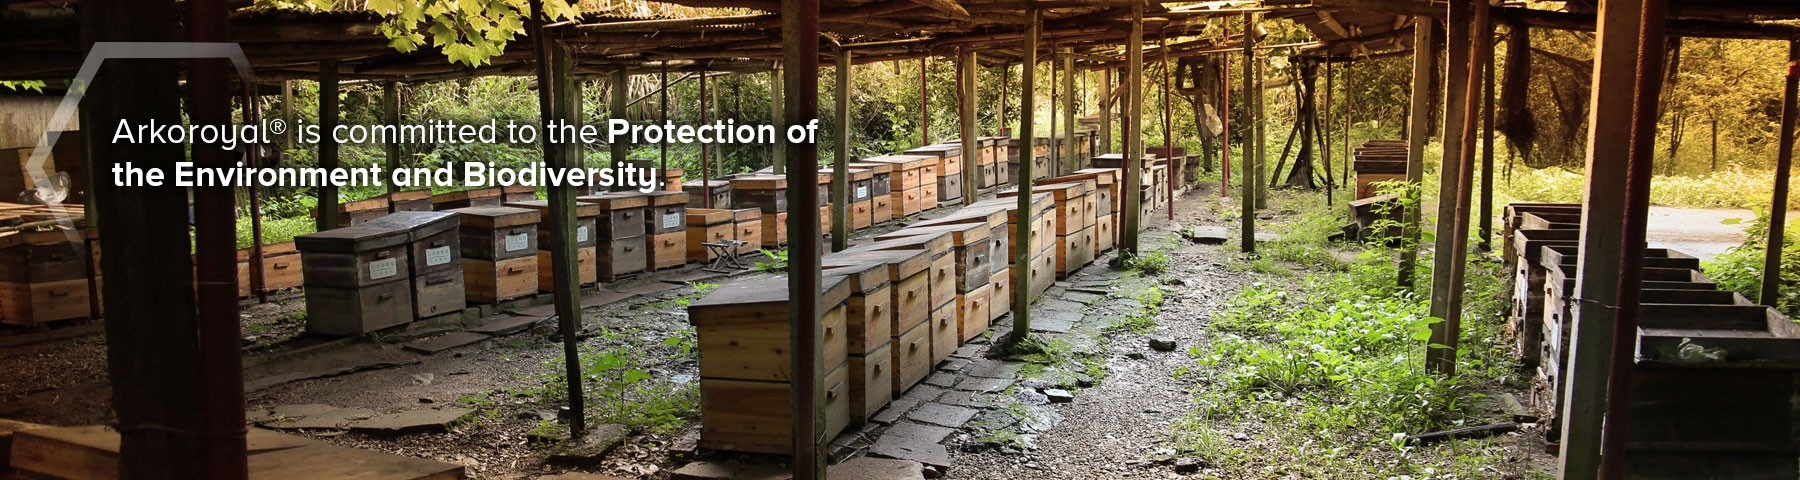 Preservation of the ecosystem around the hives